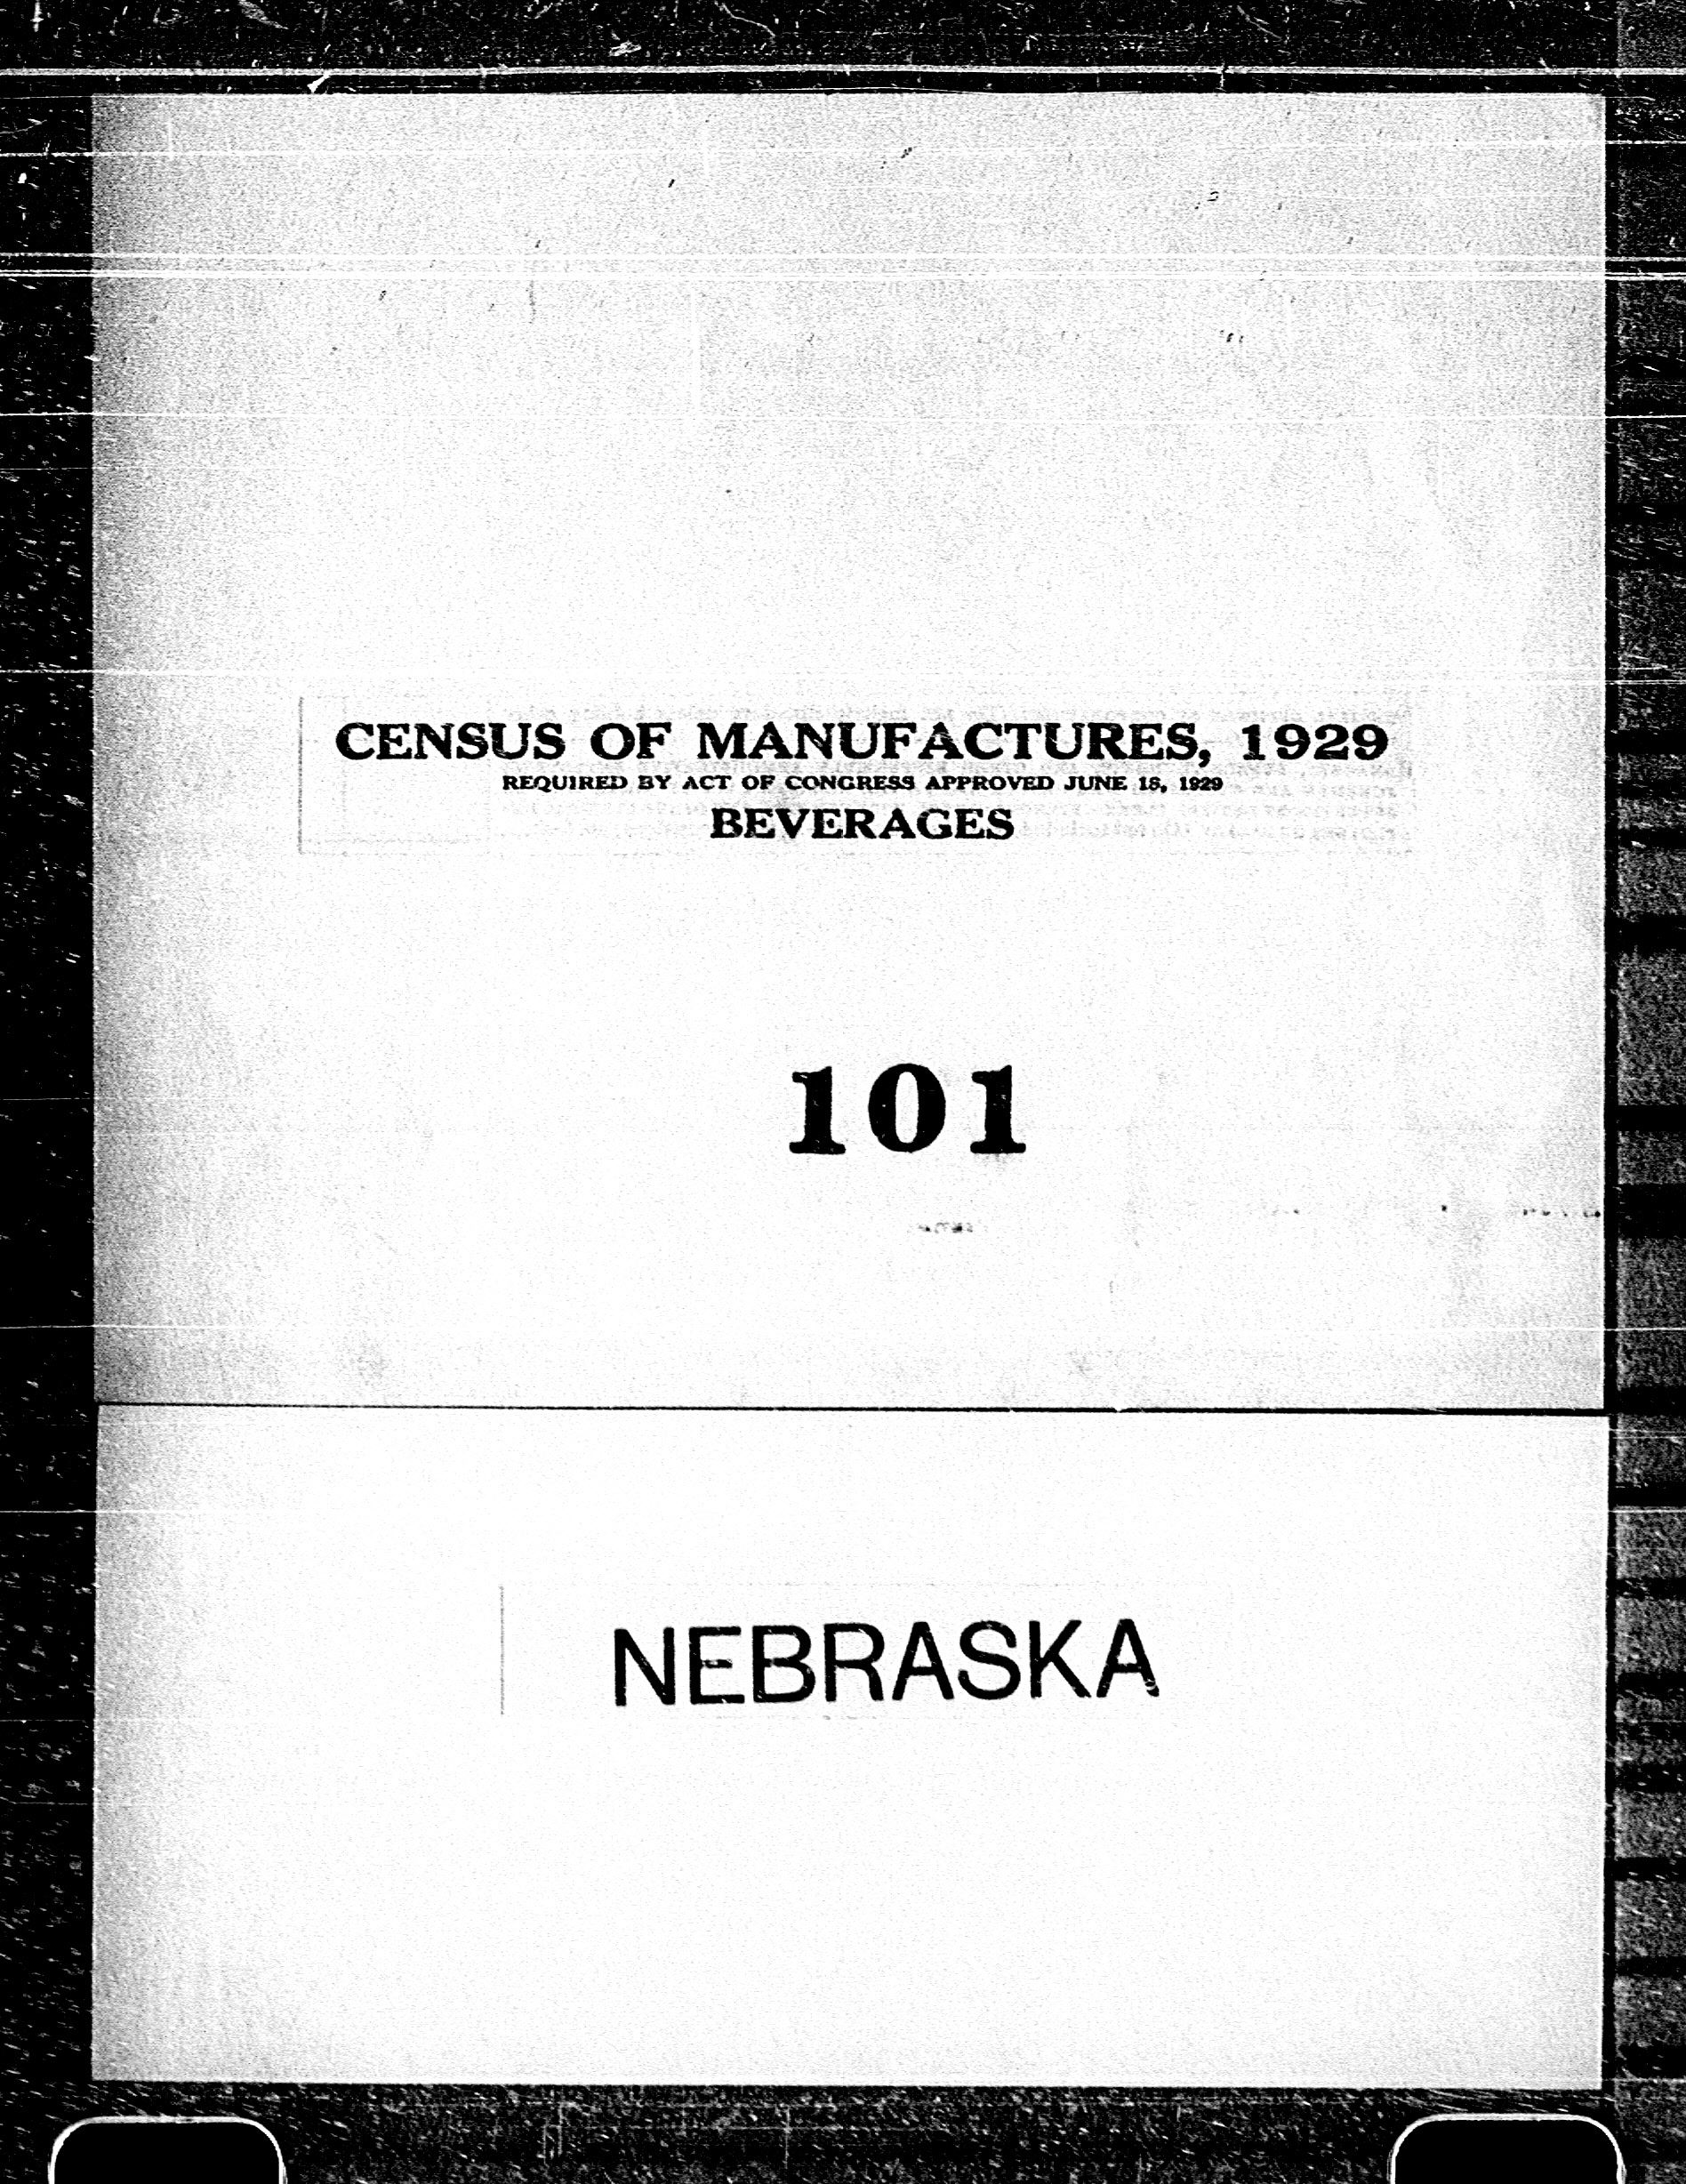 Nebraska: Industry No. 101 - Beverages